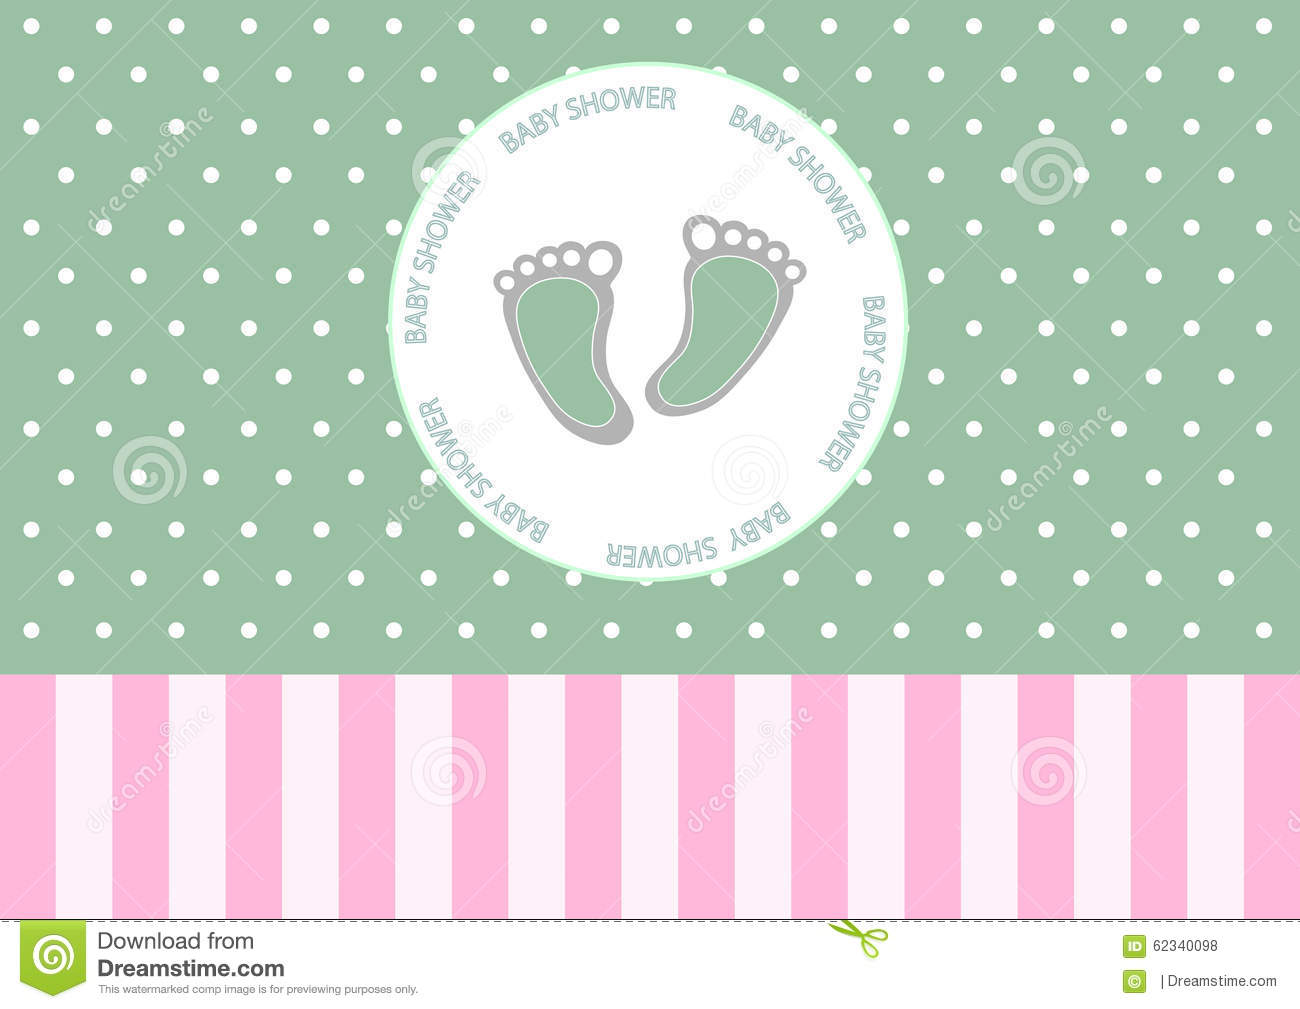 Cute baby foot on greeting carddesign of baby shower cards stock cute baby foot on greeting carddesign of baby shower cards kristyandbryce Choice Image